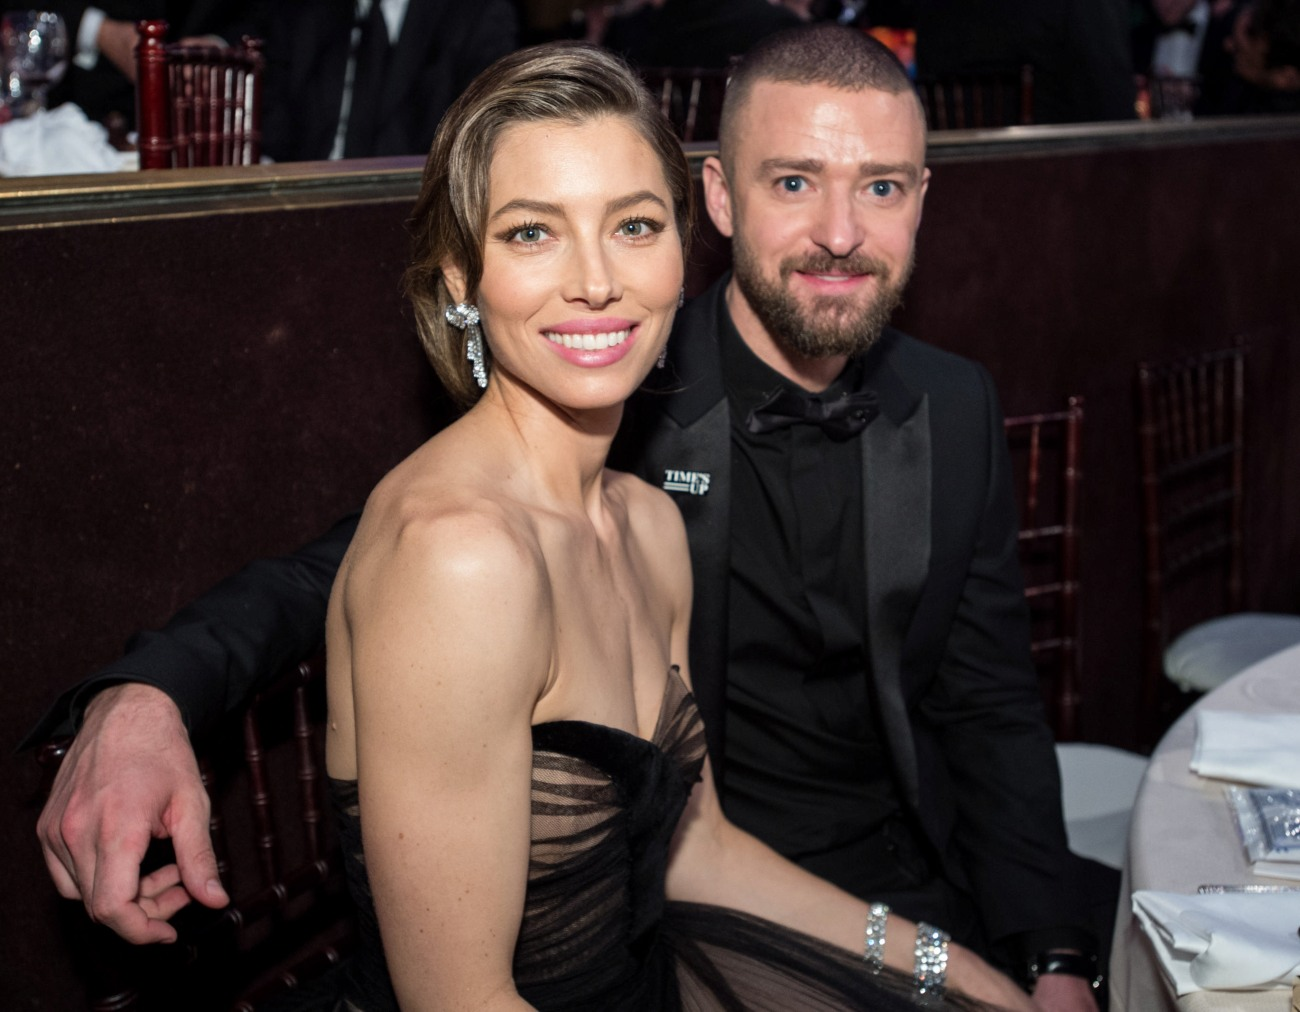 """Nominated for BEST PERFORMANCE BY AN ACTRESS IN A LIMITED SERIES OR A MOTION PICTURE MADE FOR TELEVISION for her role in """"The Sinner,"""" actress Jessica Biel and husband Justin Timberlake attend the 75th Annual Golden Globes Awards at the Beverly Hilton in Beverly Hills, CA on Sunday, January 7, 2018."""